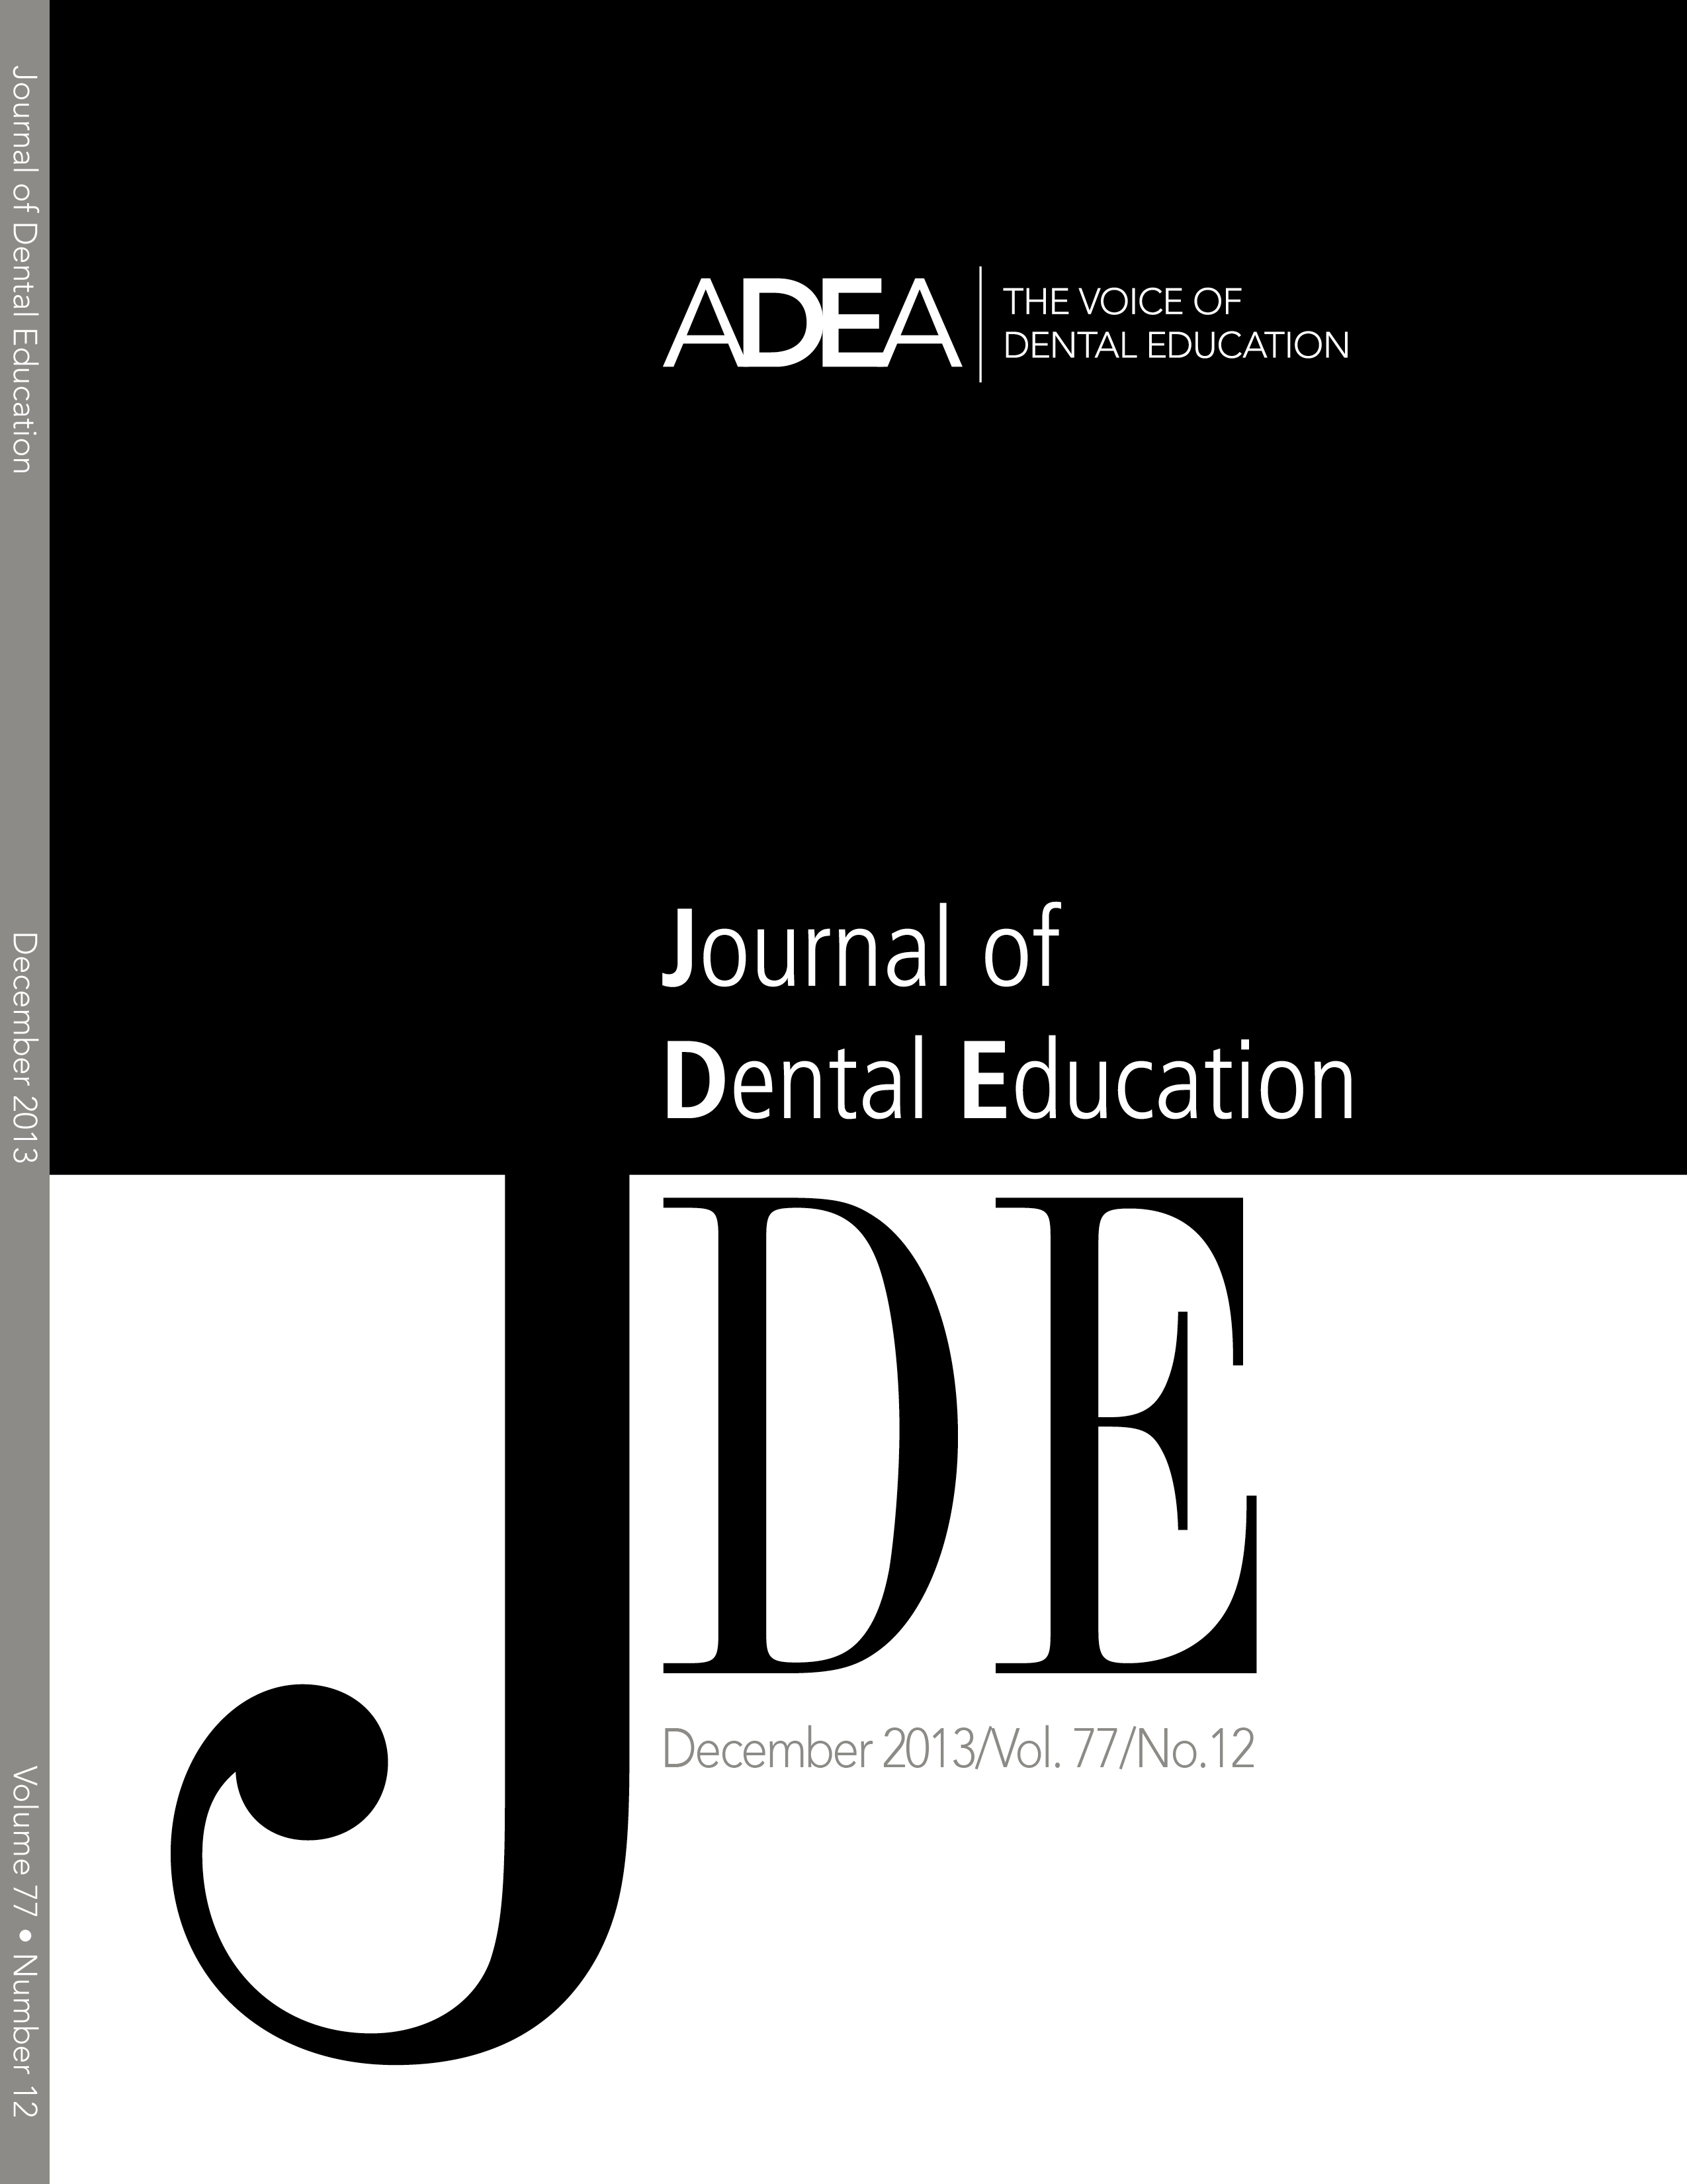 Adea journal of dental education article surveys student opinion on full size greentooth Gallery